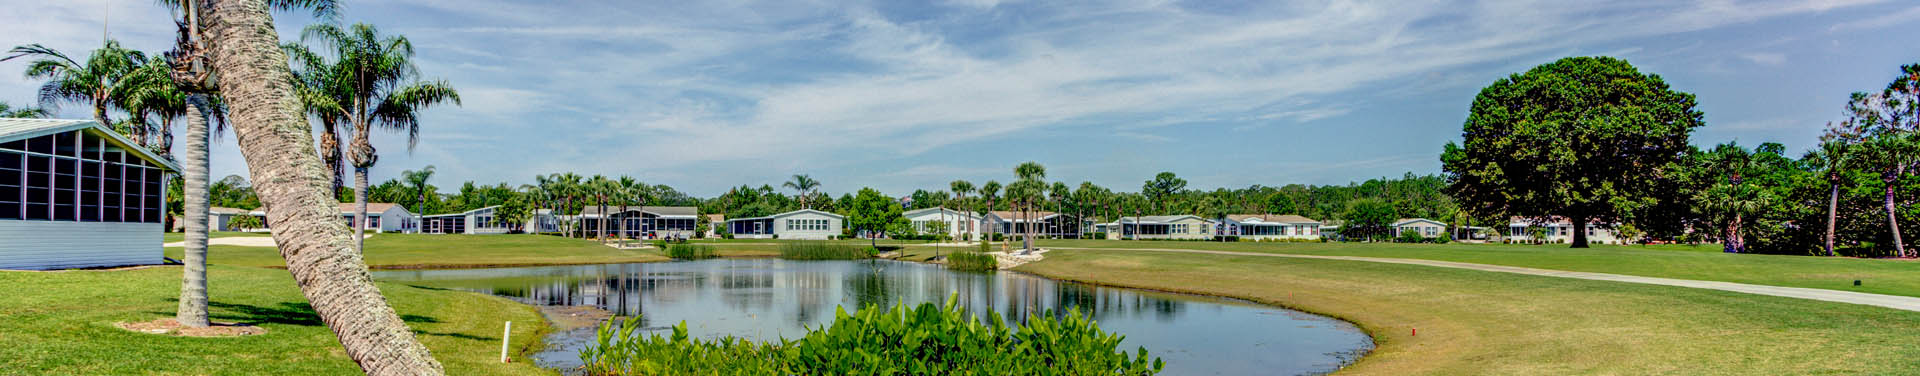 Photo of Green grass, palm trees, and mobile homes that surround a retention pond in the middle of the community